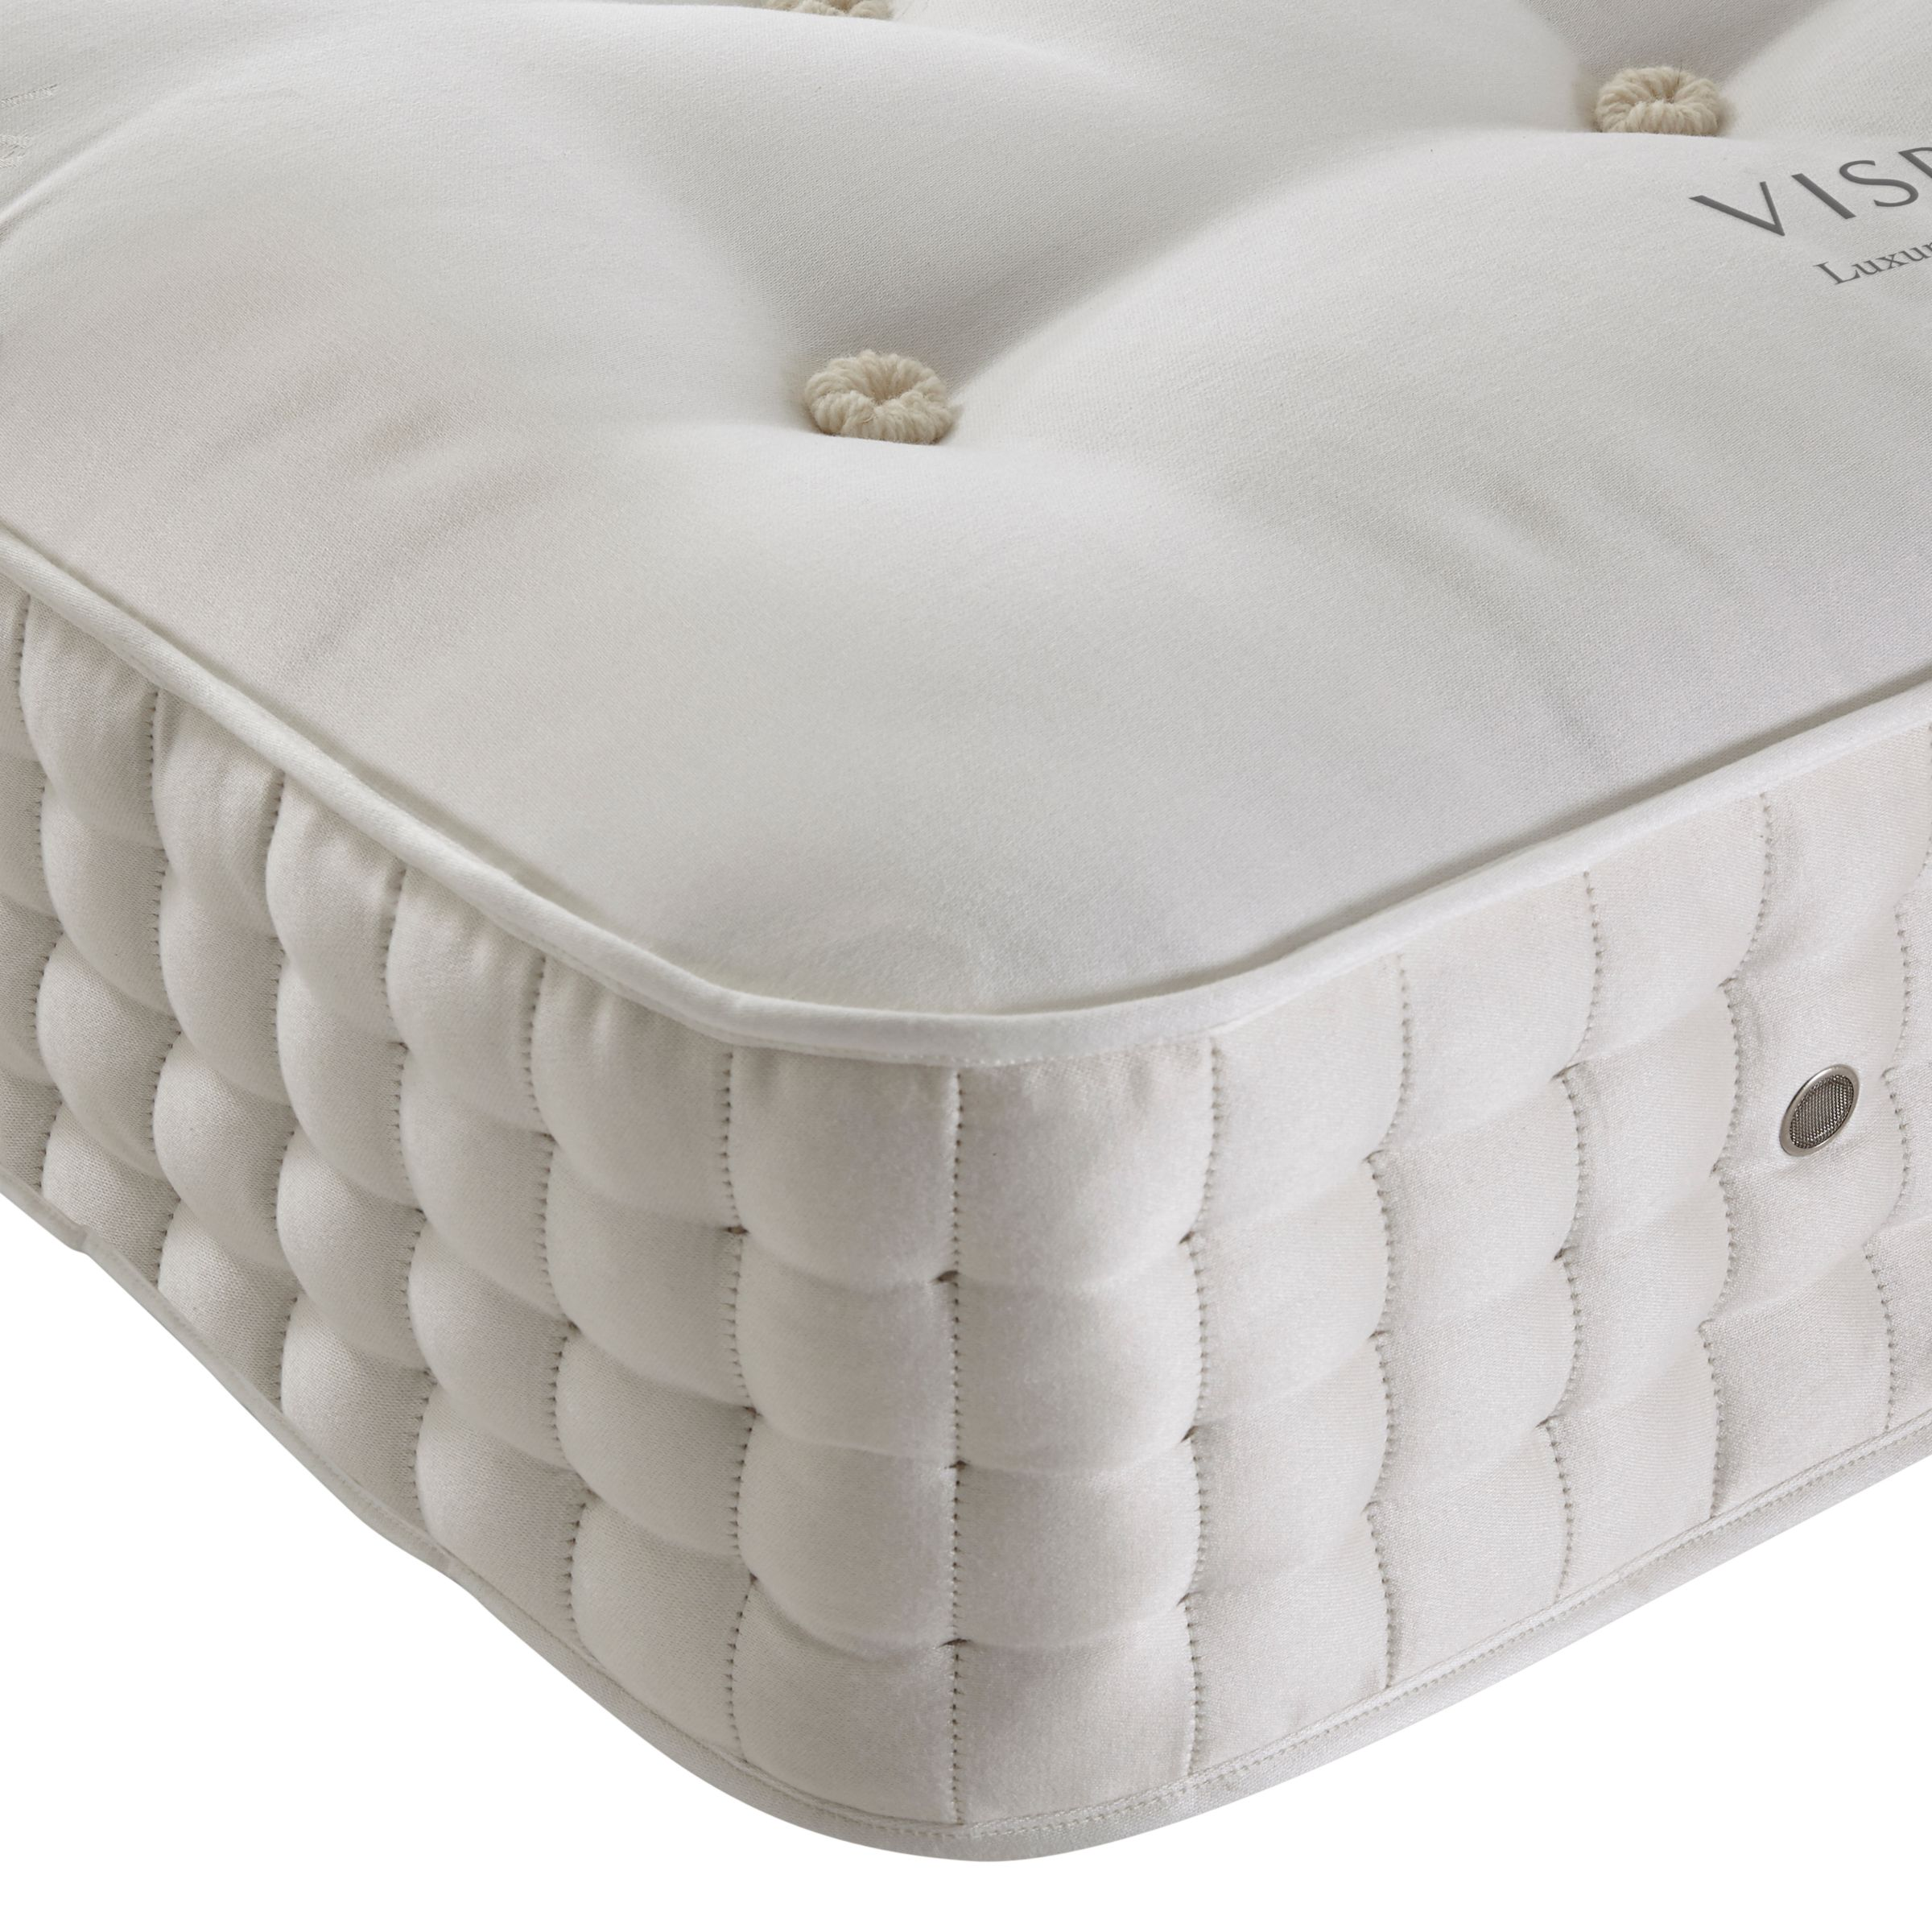 Vi-Spring Stowe Superb Zip Link Mattress, Emperor